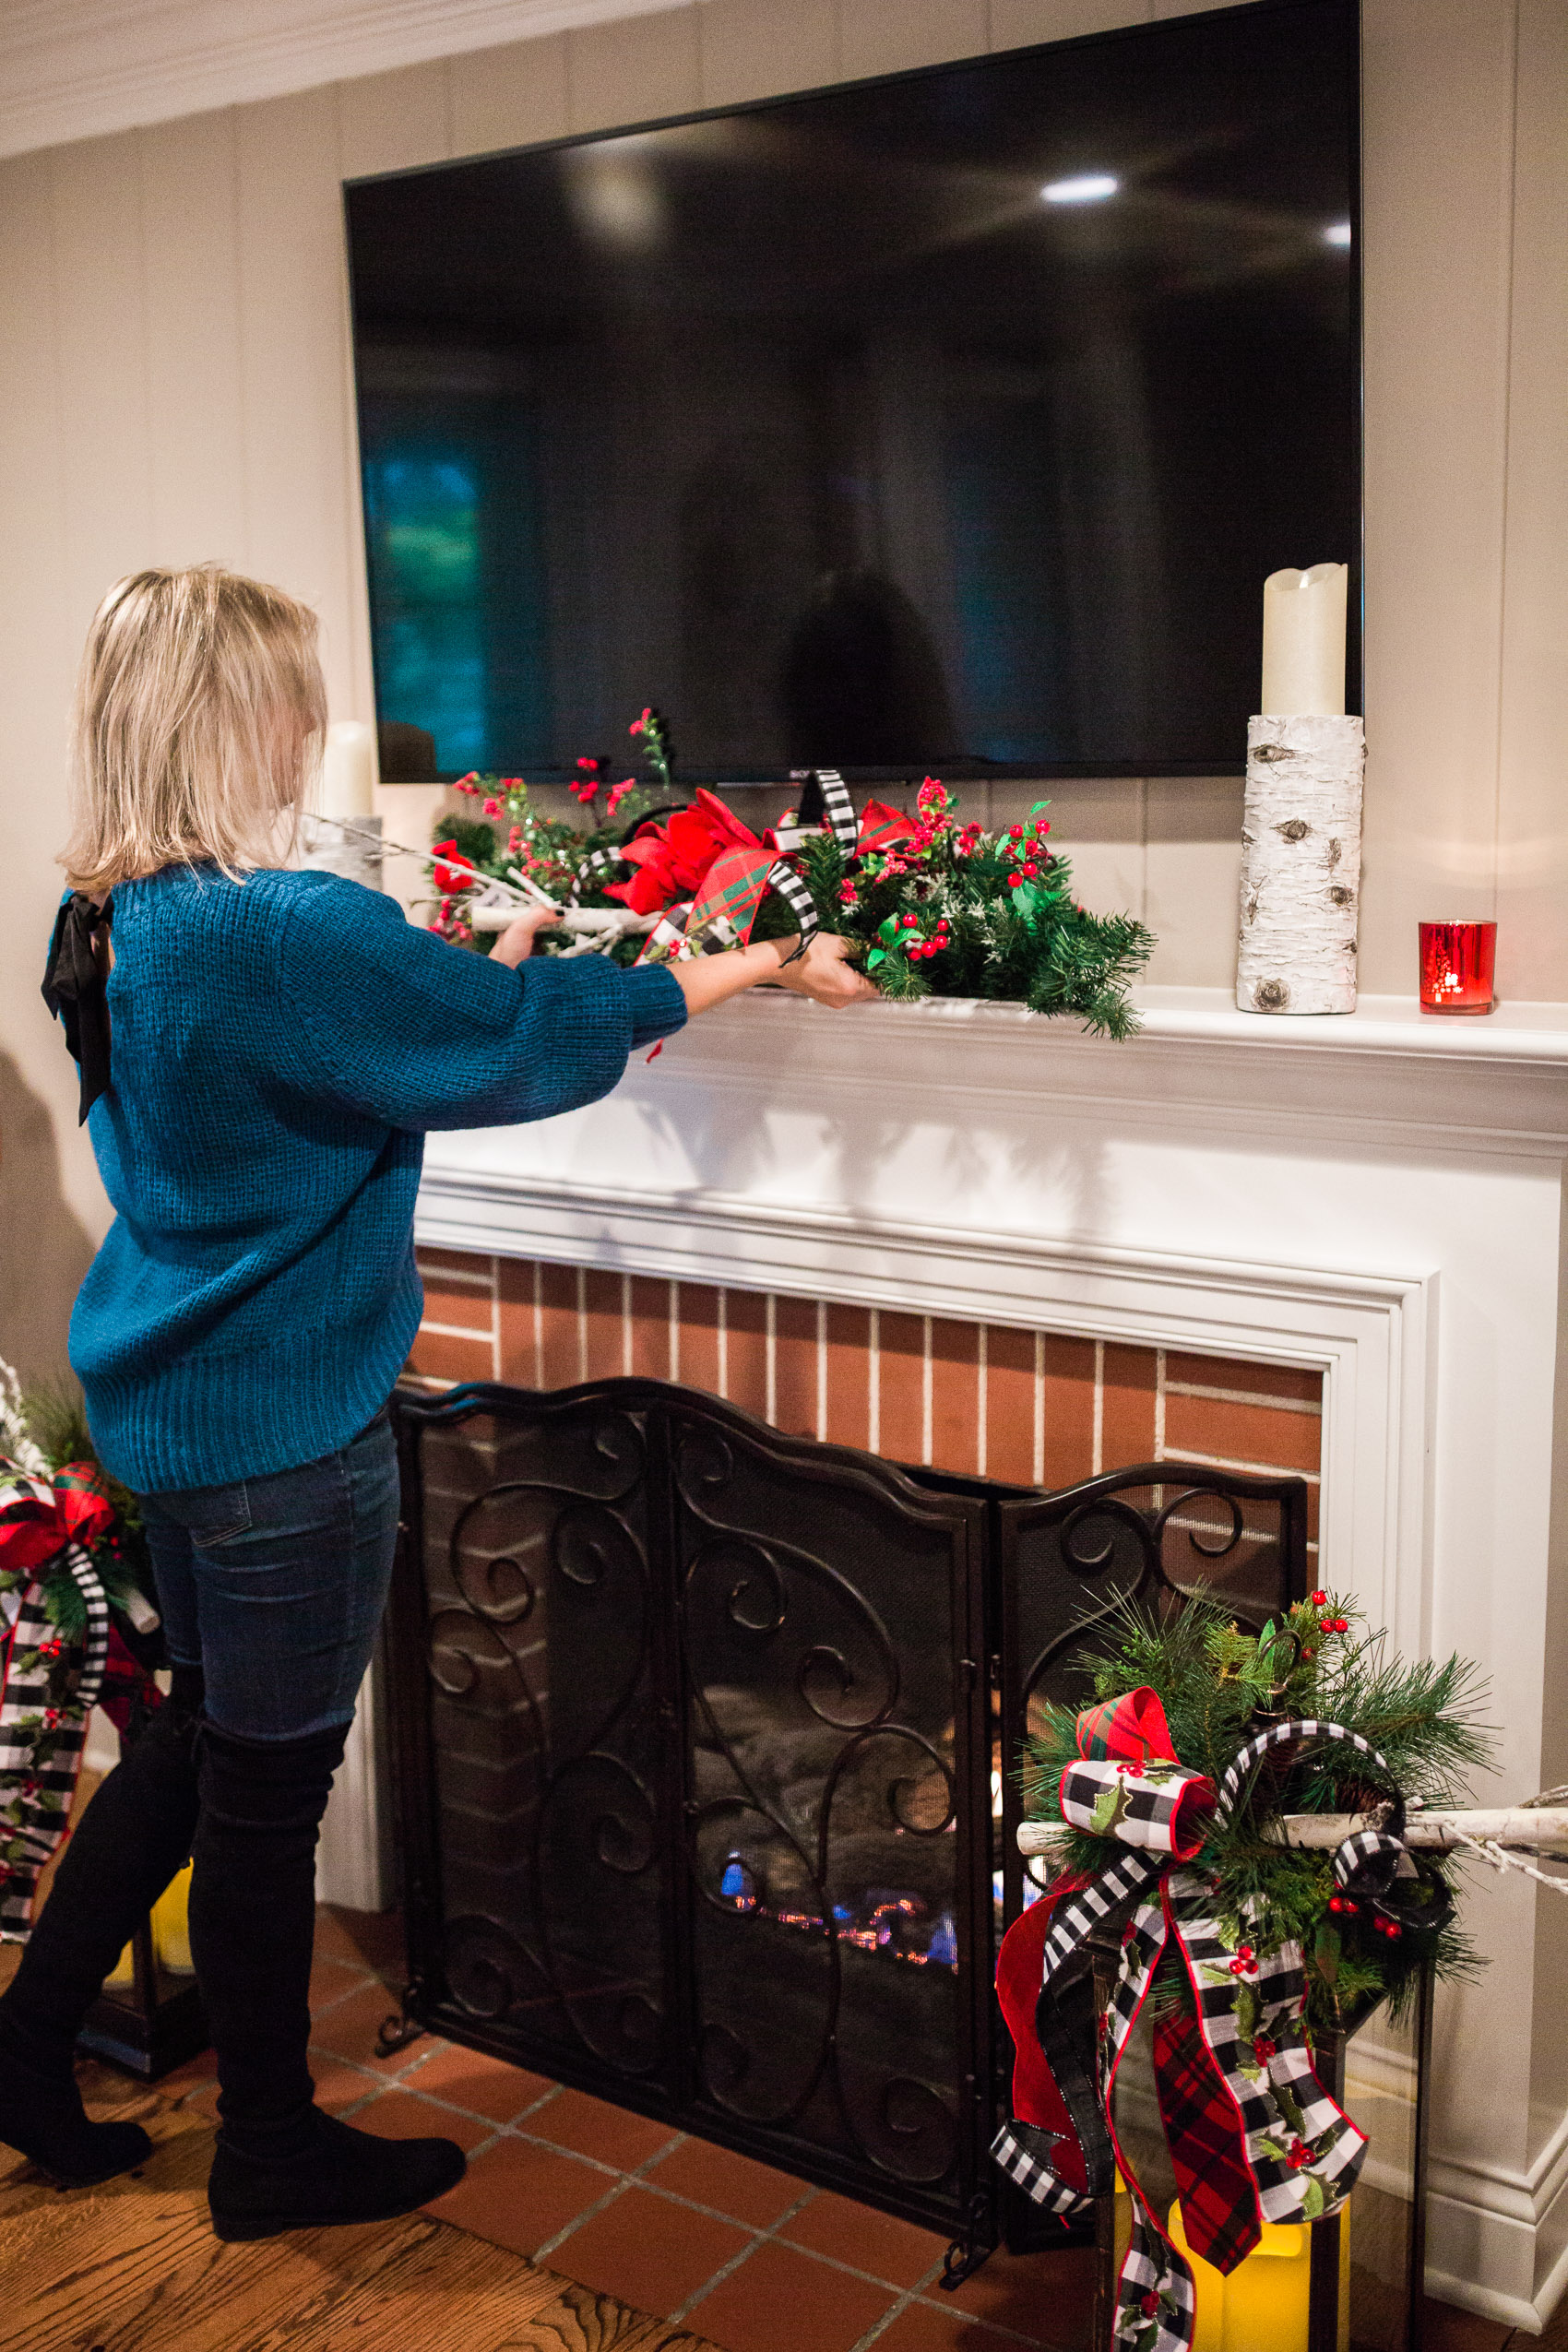 how to decorate holiday mantel with tv (1 of 2),2